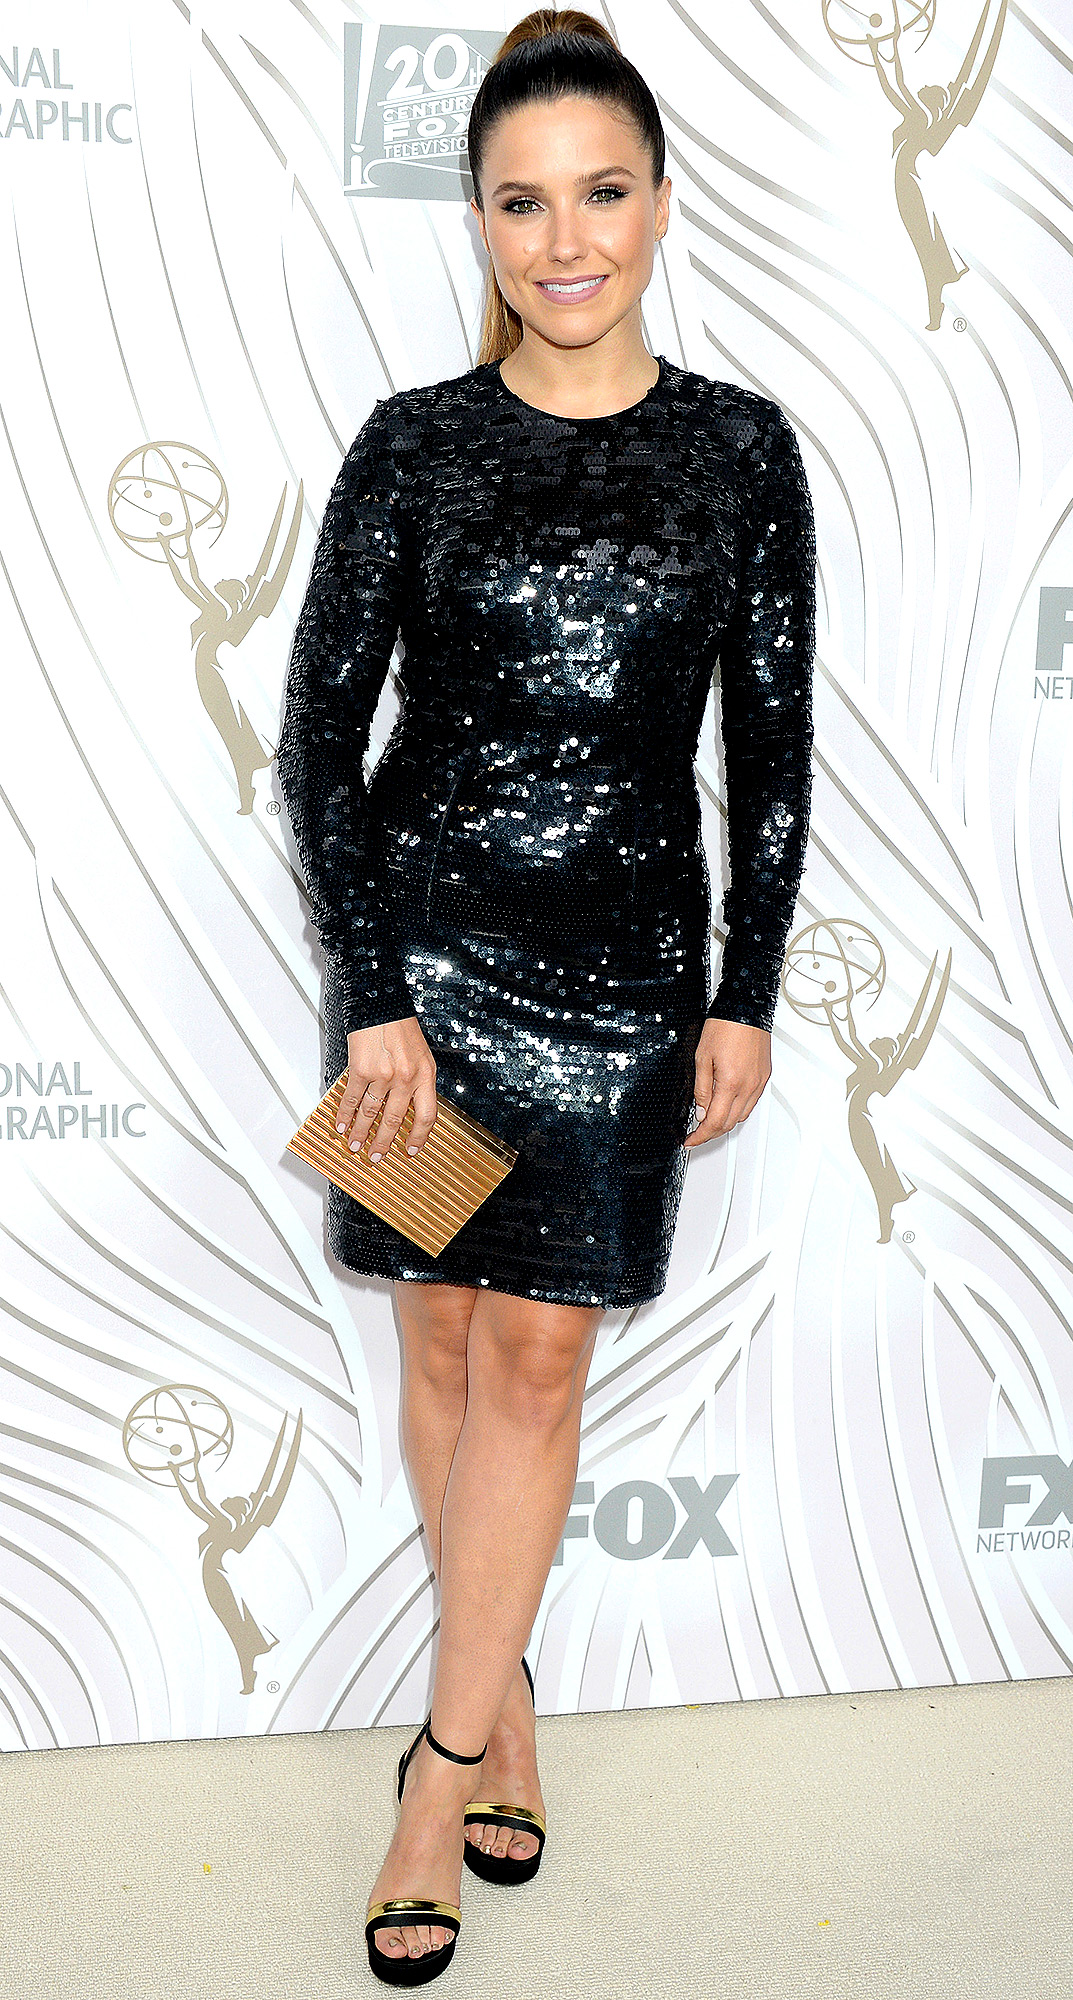 69th Primetime Emmy Awards, 20th Television, Fox, FX Party, Los Angeles, USA - 17 Sep 2017